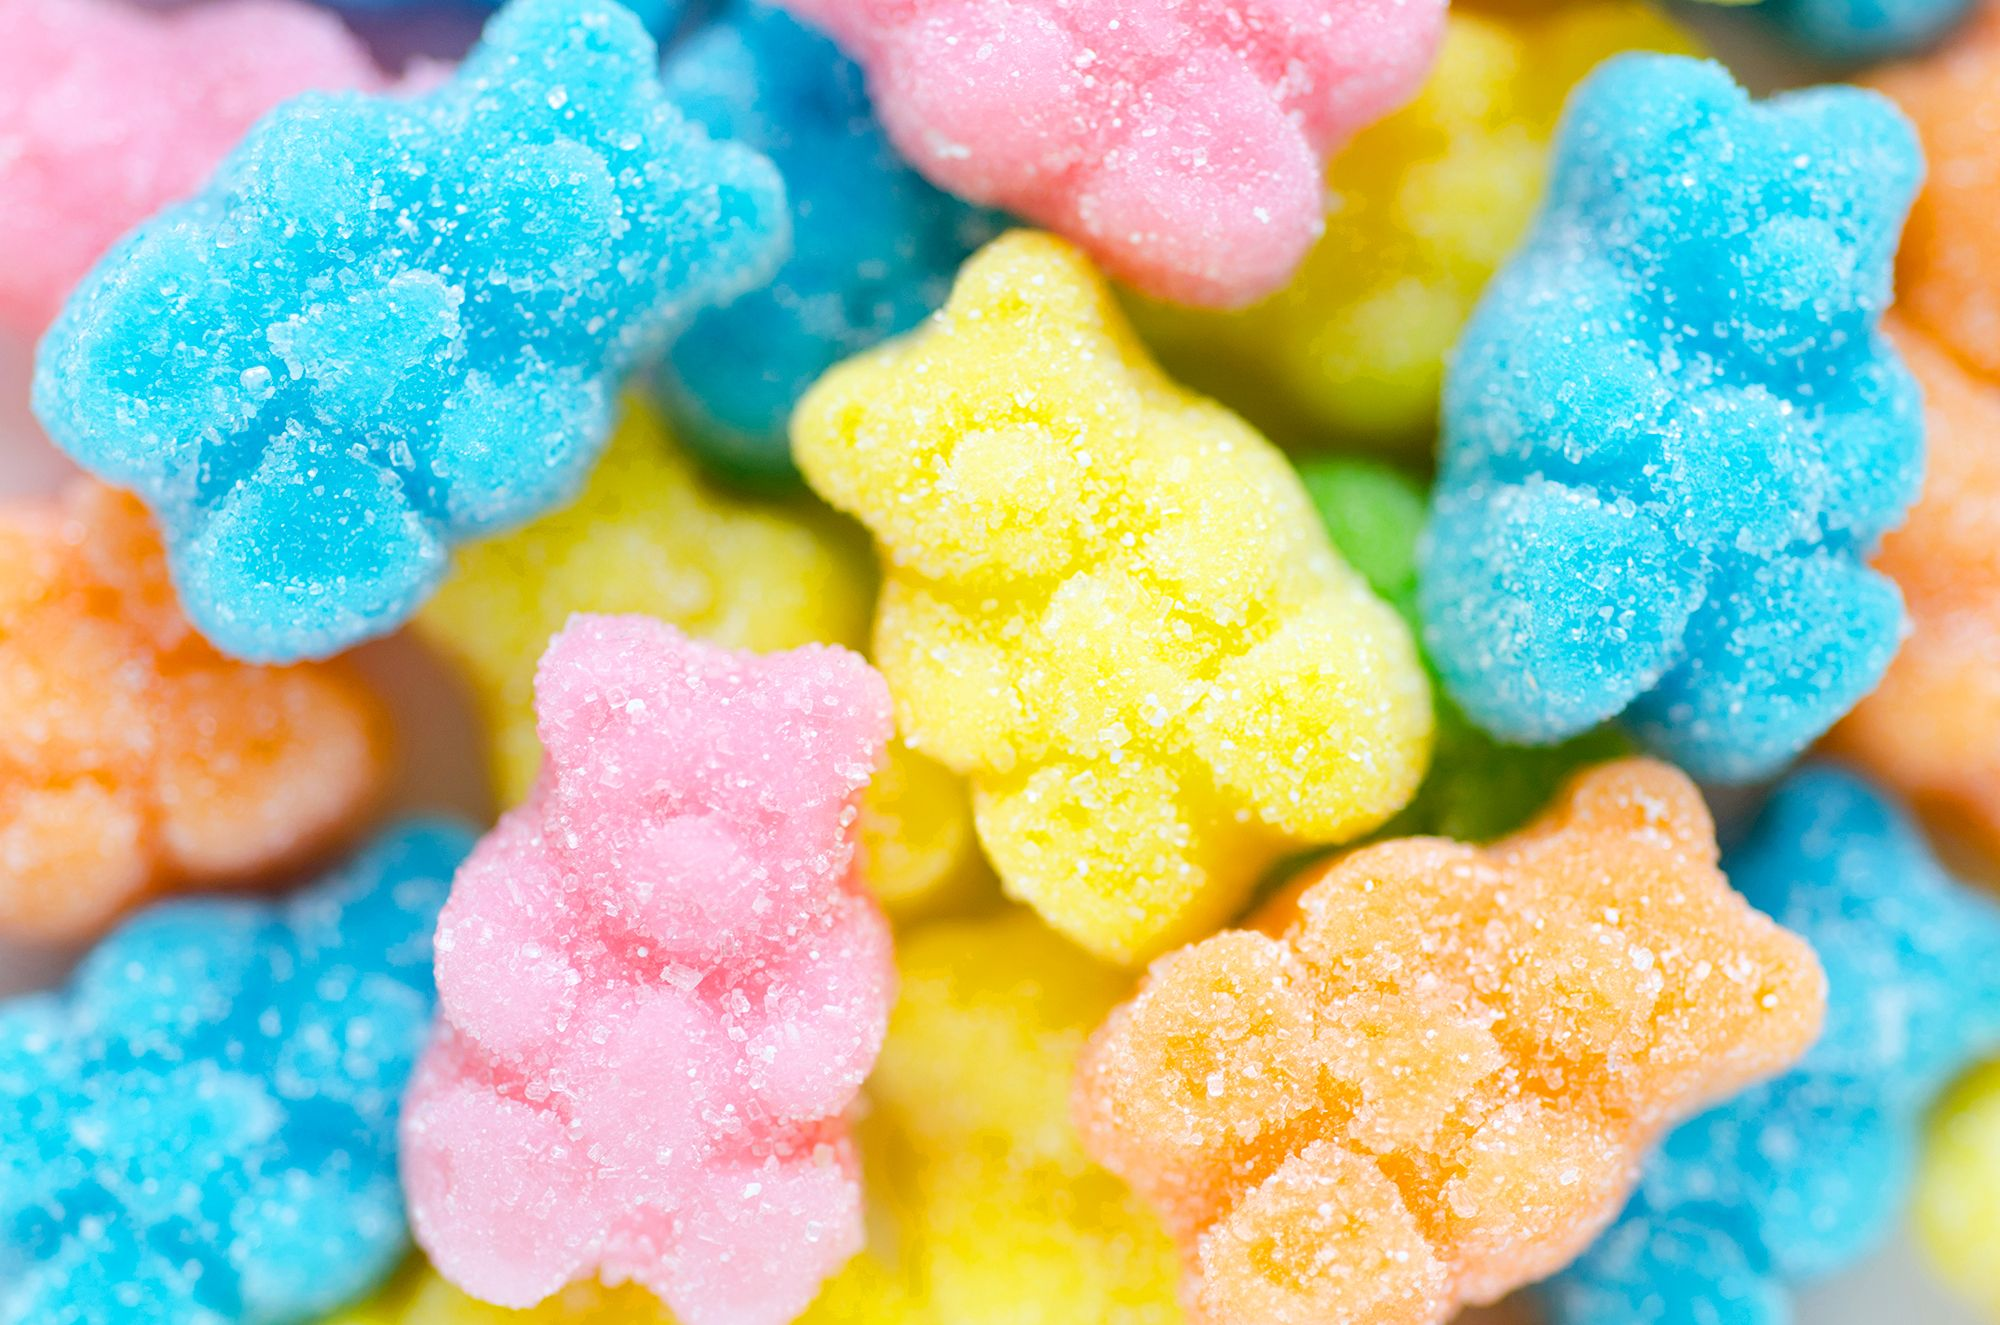 The FDA Banned 6 Ingredients Found in Candy, Gum, and Soda Due to Links to Cancer